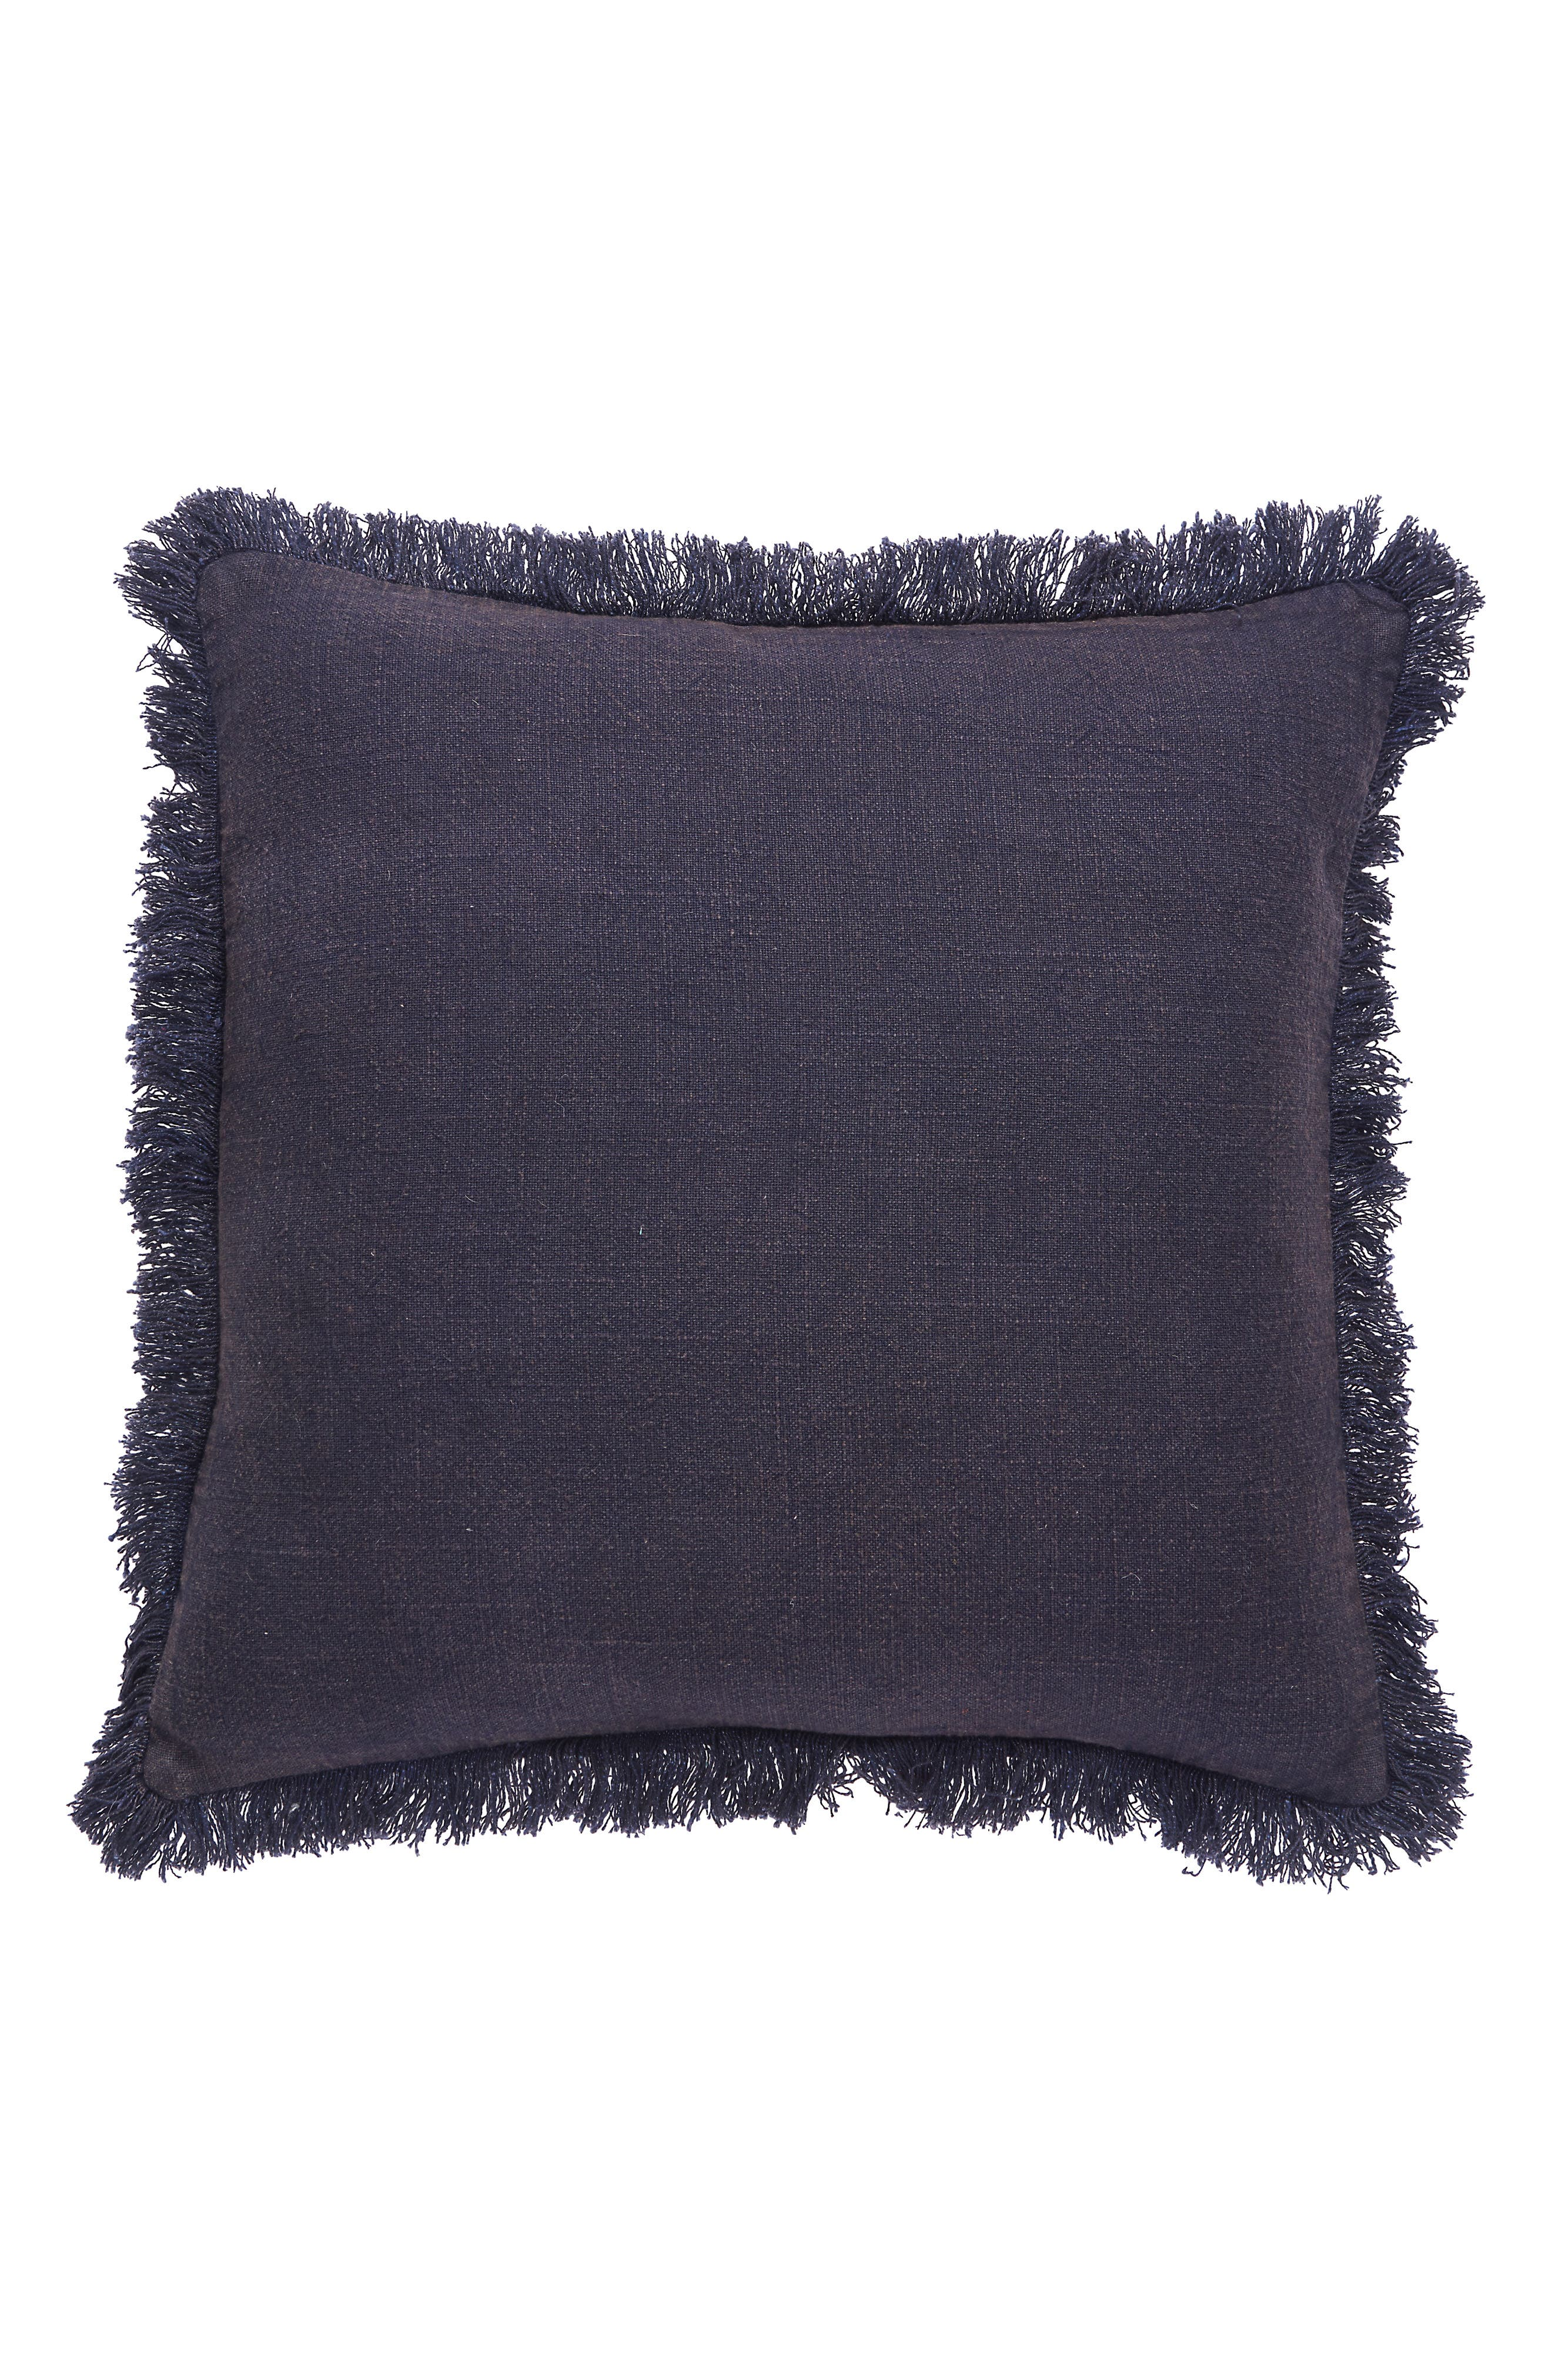 Greystone Accent Pillow,                             Main thumbnail 1, color,                             Blue